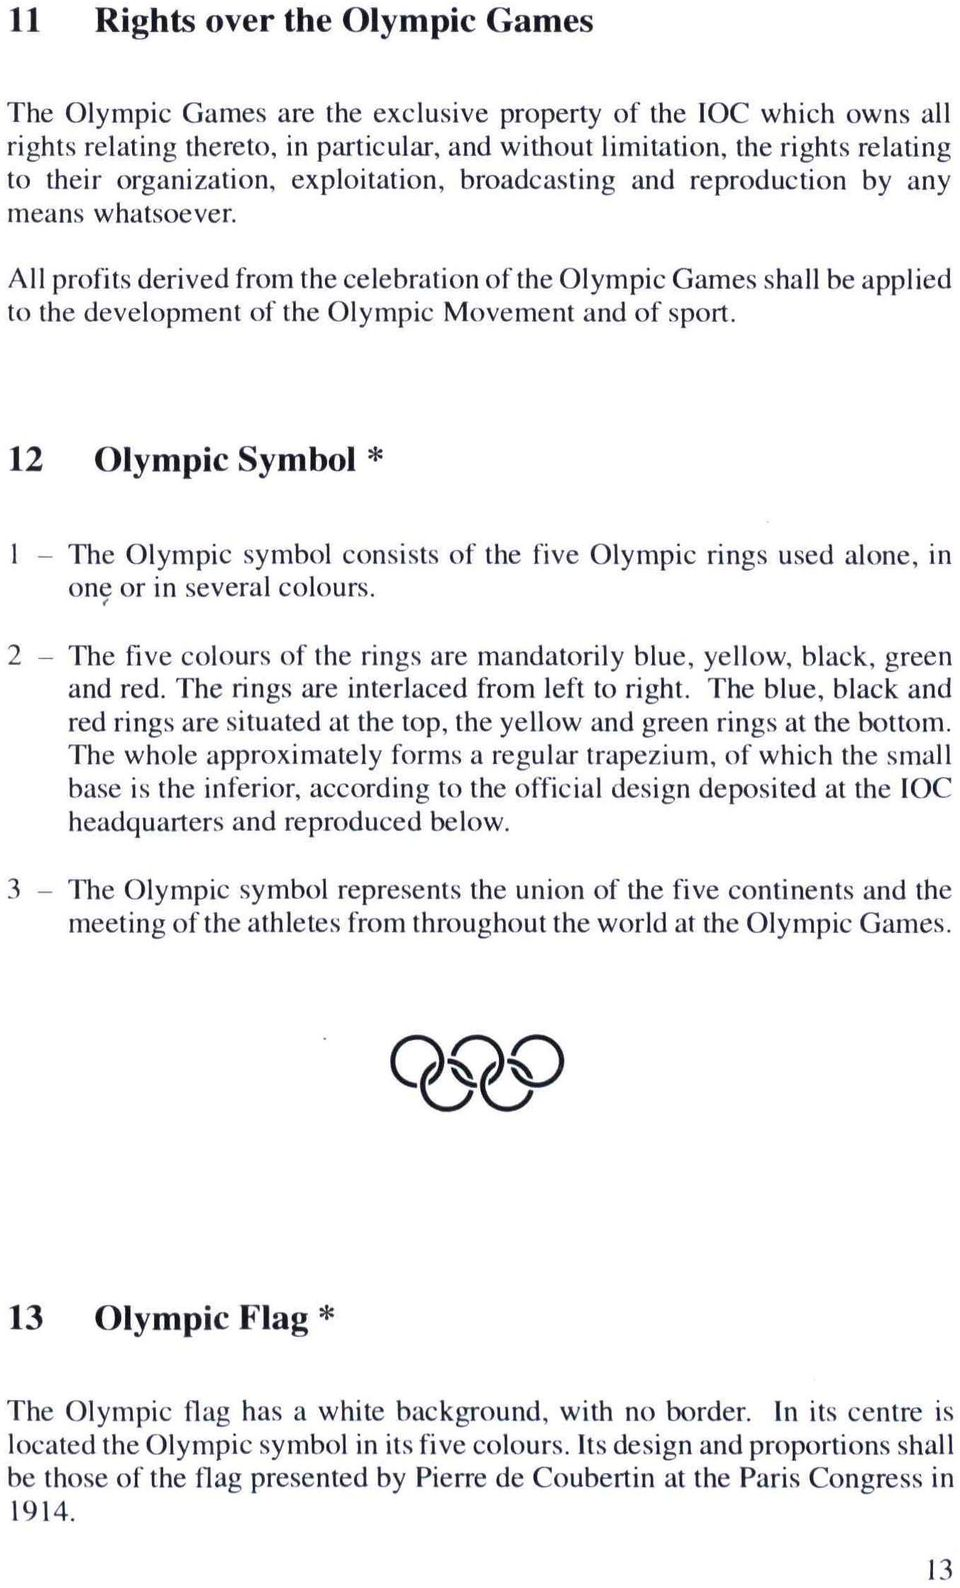 All profits derived from the celebration of the Olympic Games shall be applied to the development of the Olympic Movement and of sport.